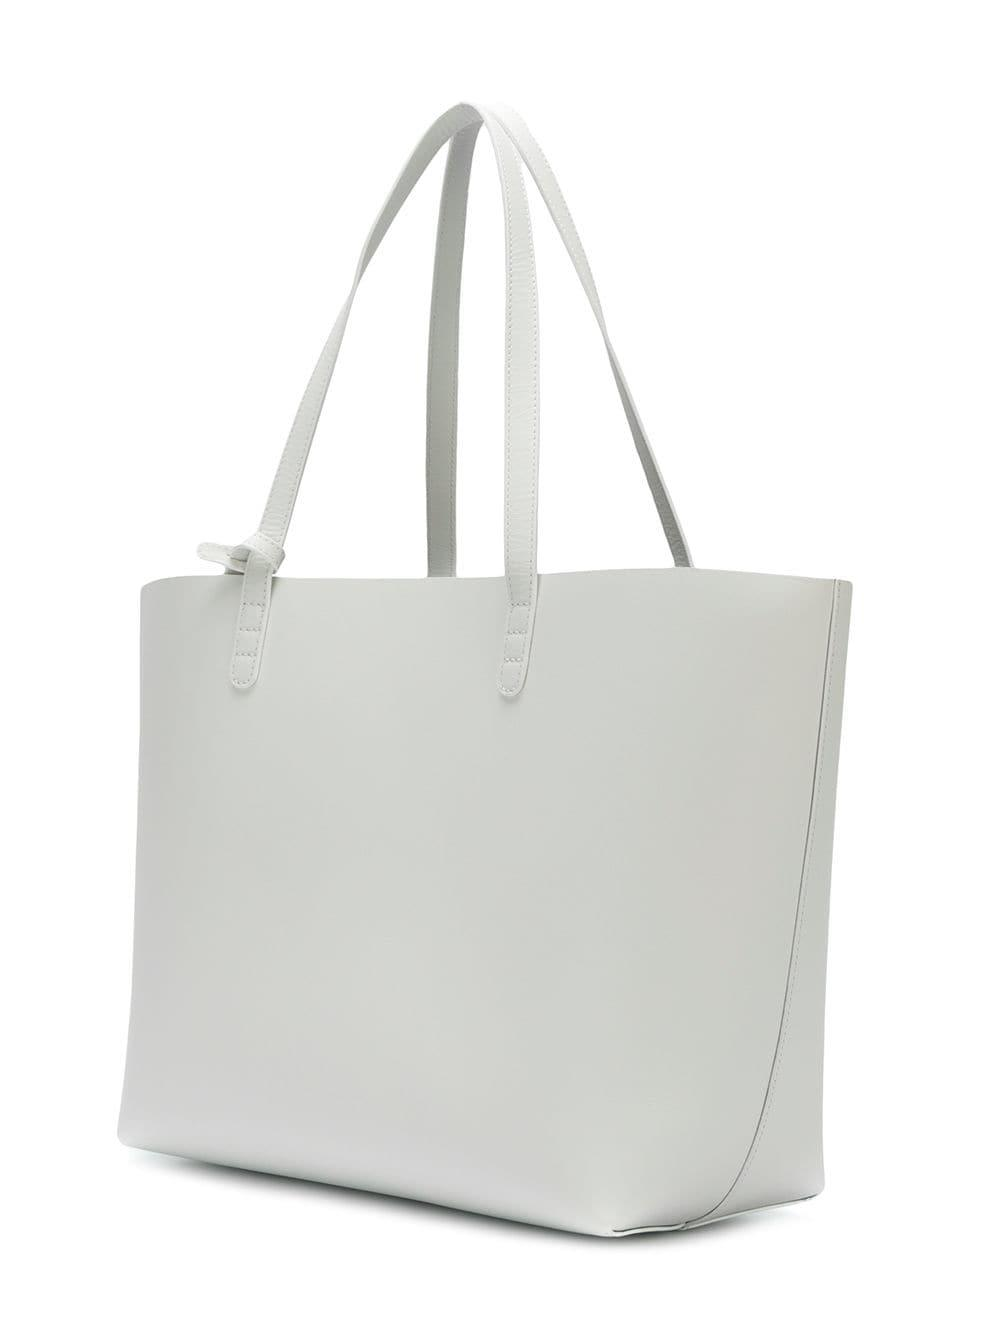 Mansur Gavriel Leather Large Tote in White